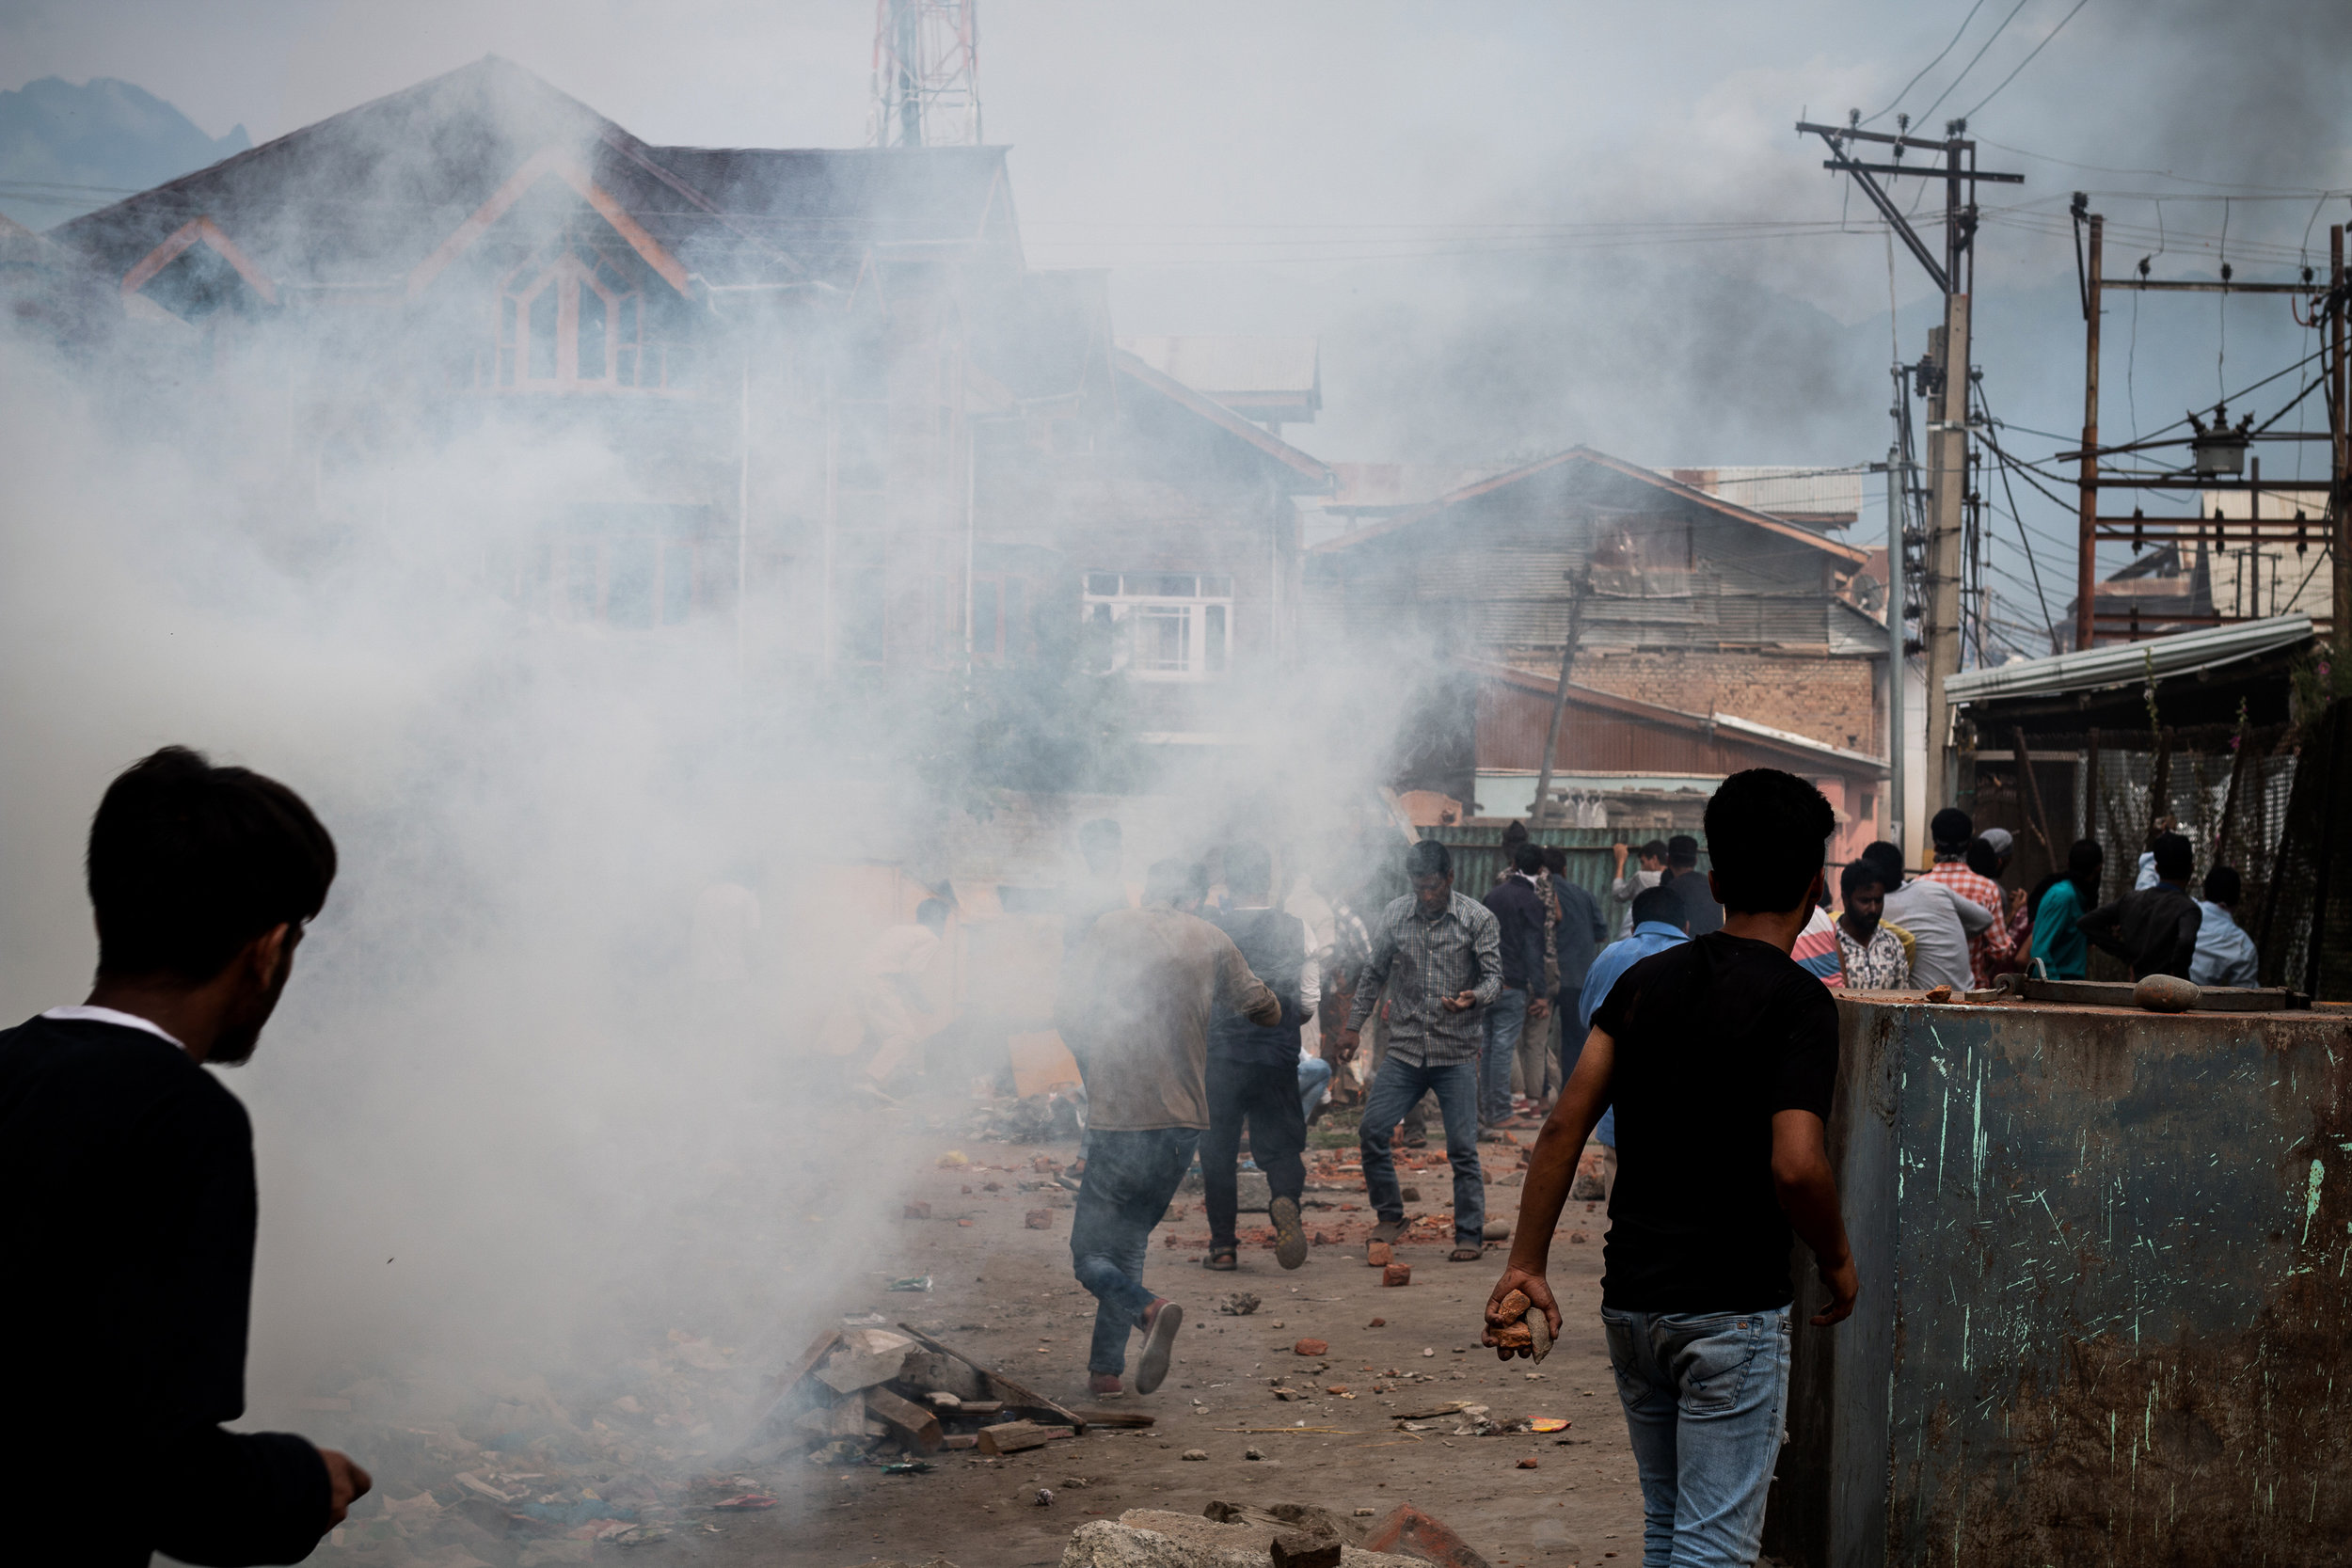 The fight between the forces and the protestors became very intense as time passed. Many protestors were injured by the pellet guns, and tear gas shells, used by the security forces. Photo by Avinash Giri.